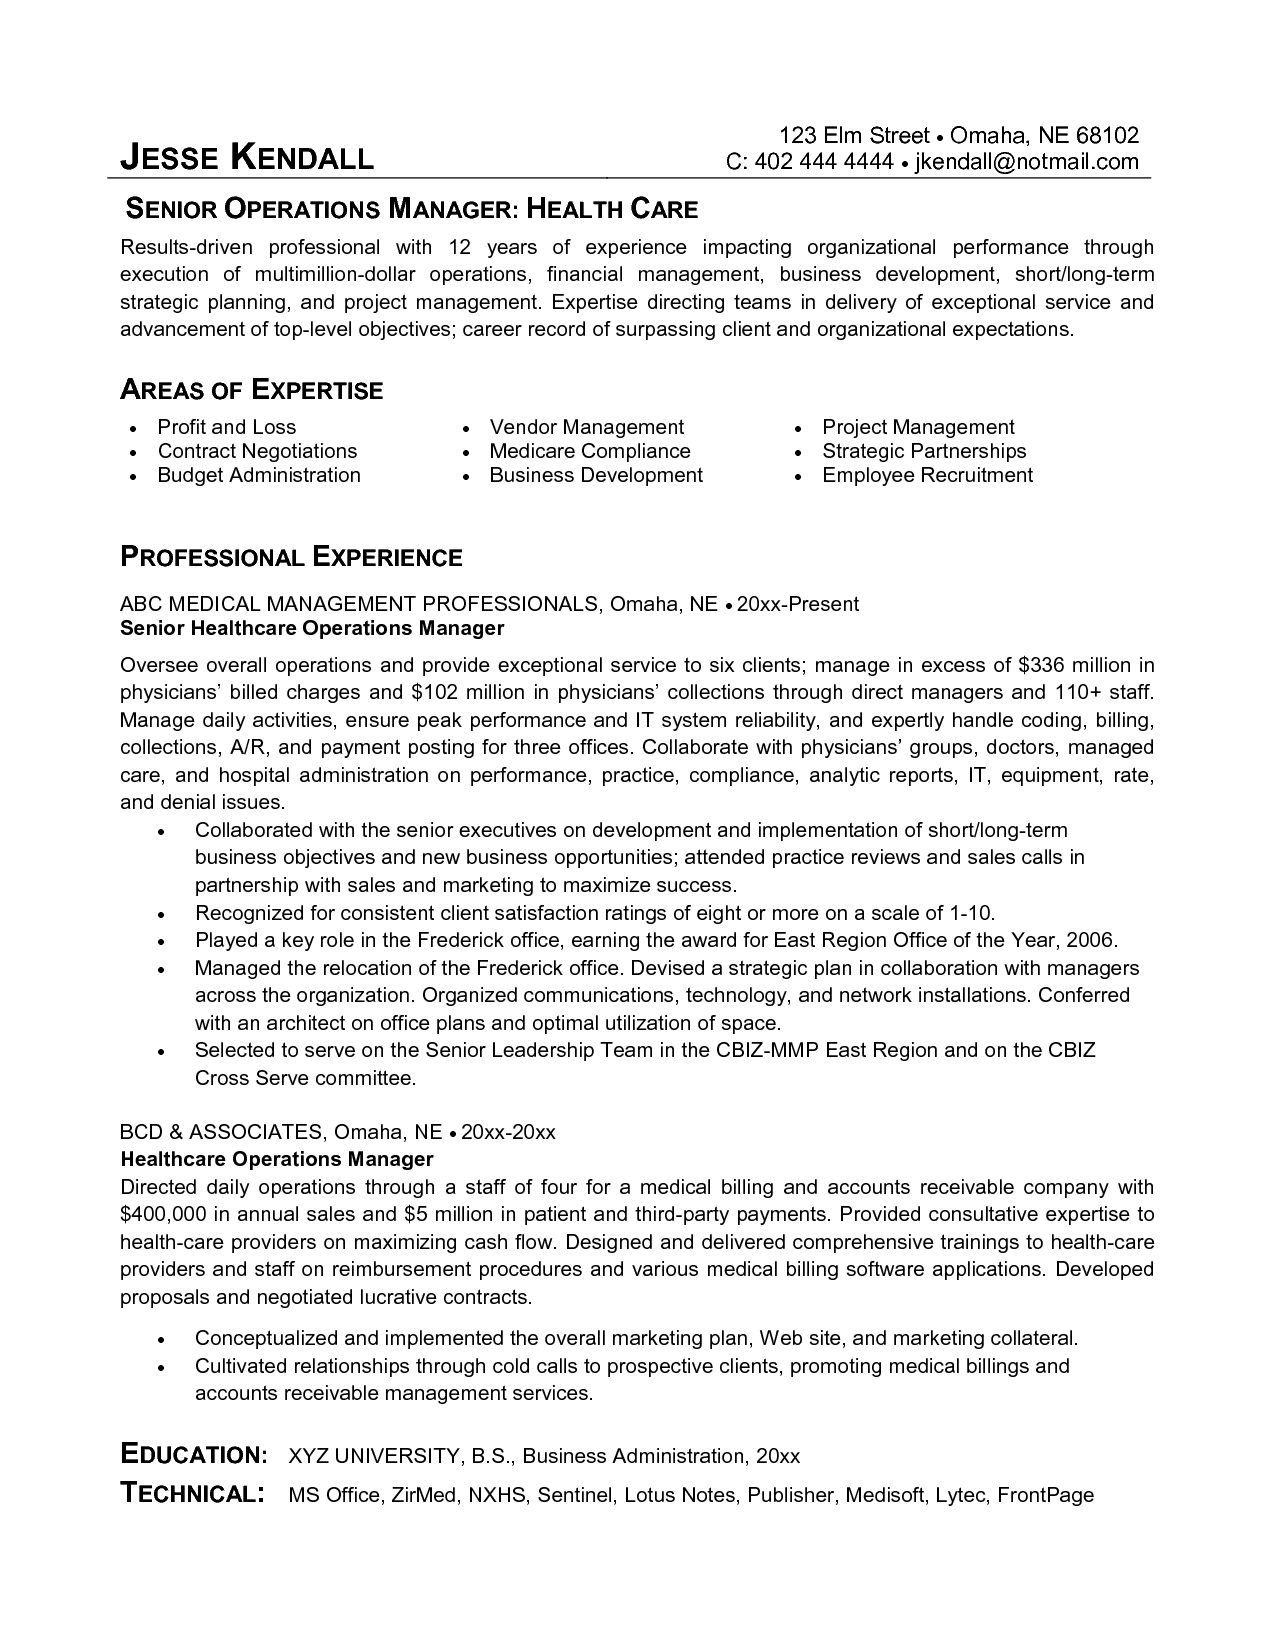 Resume Examples Healthcare Management in 2018 | Resume Examples ...